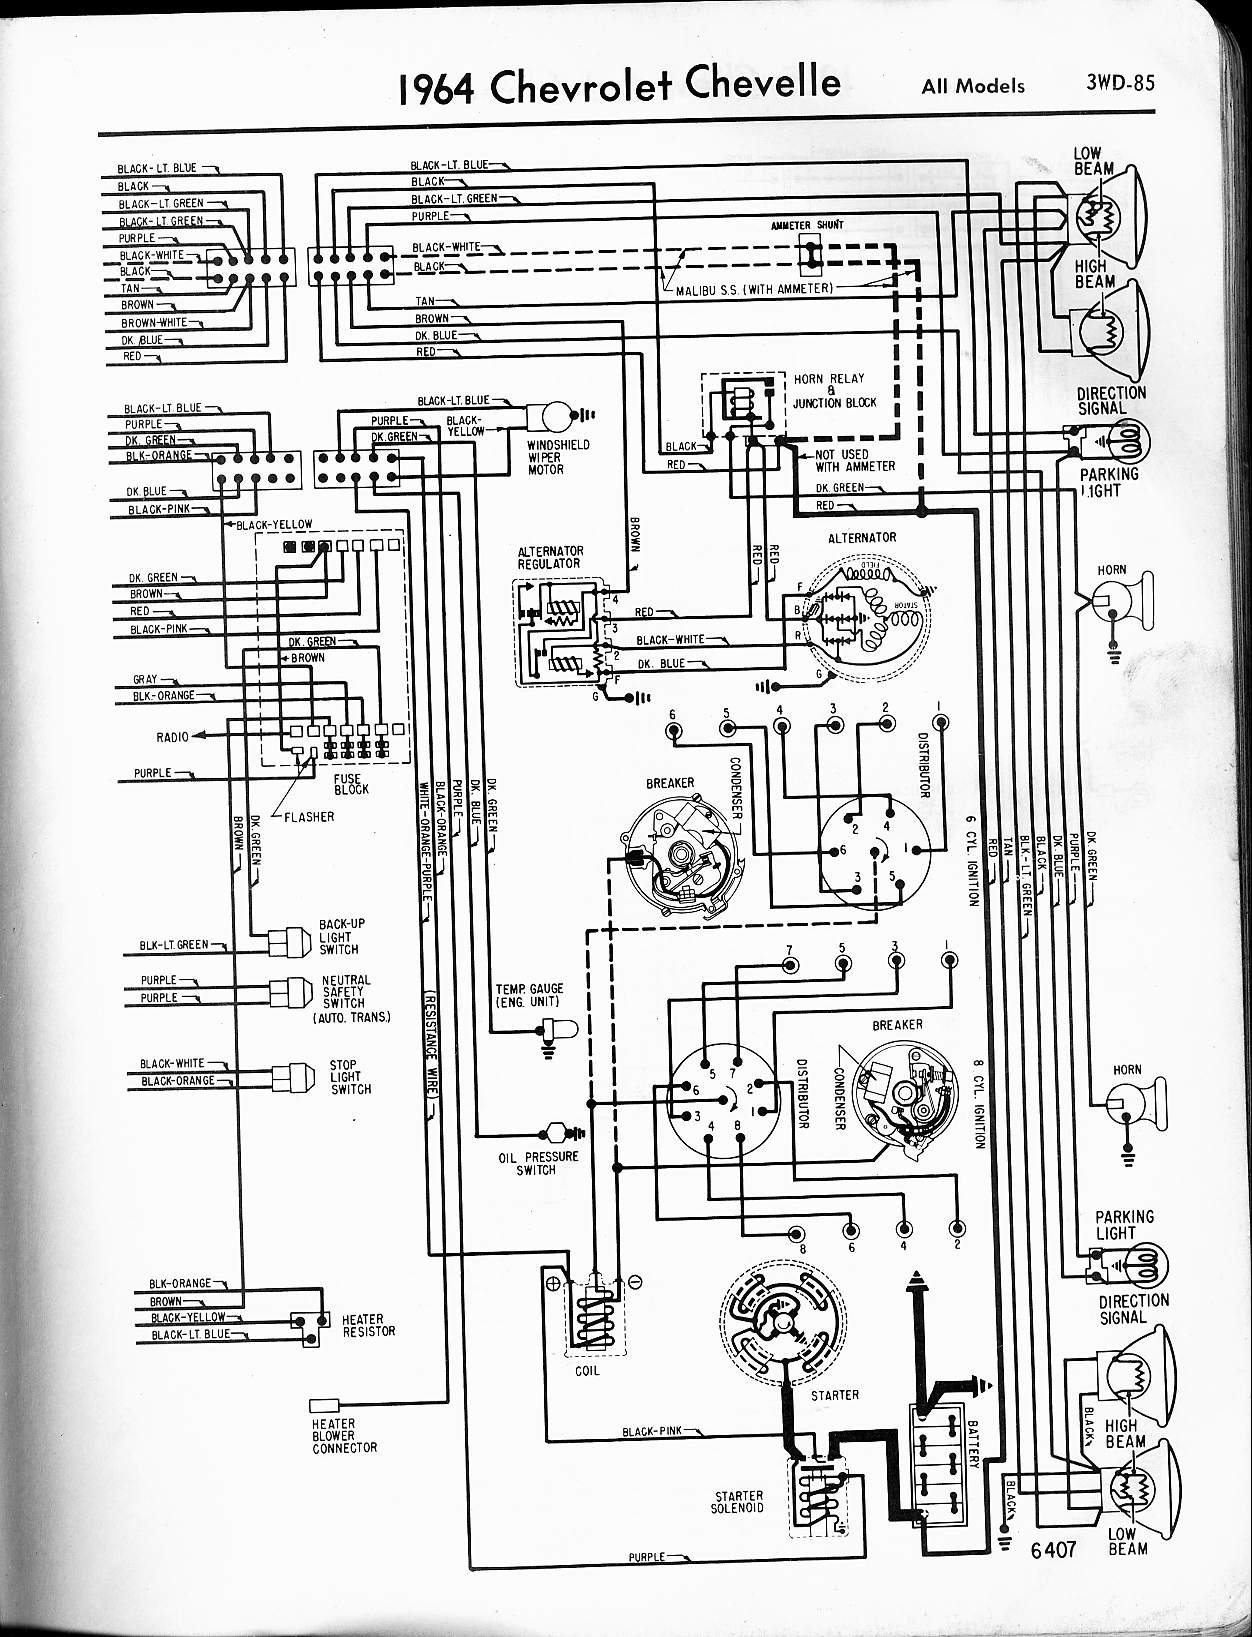 MWireChev64_3WD 085 chevy diagrams Ford Alternator Wiring Diagram at nearapp.co